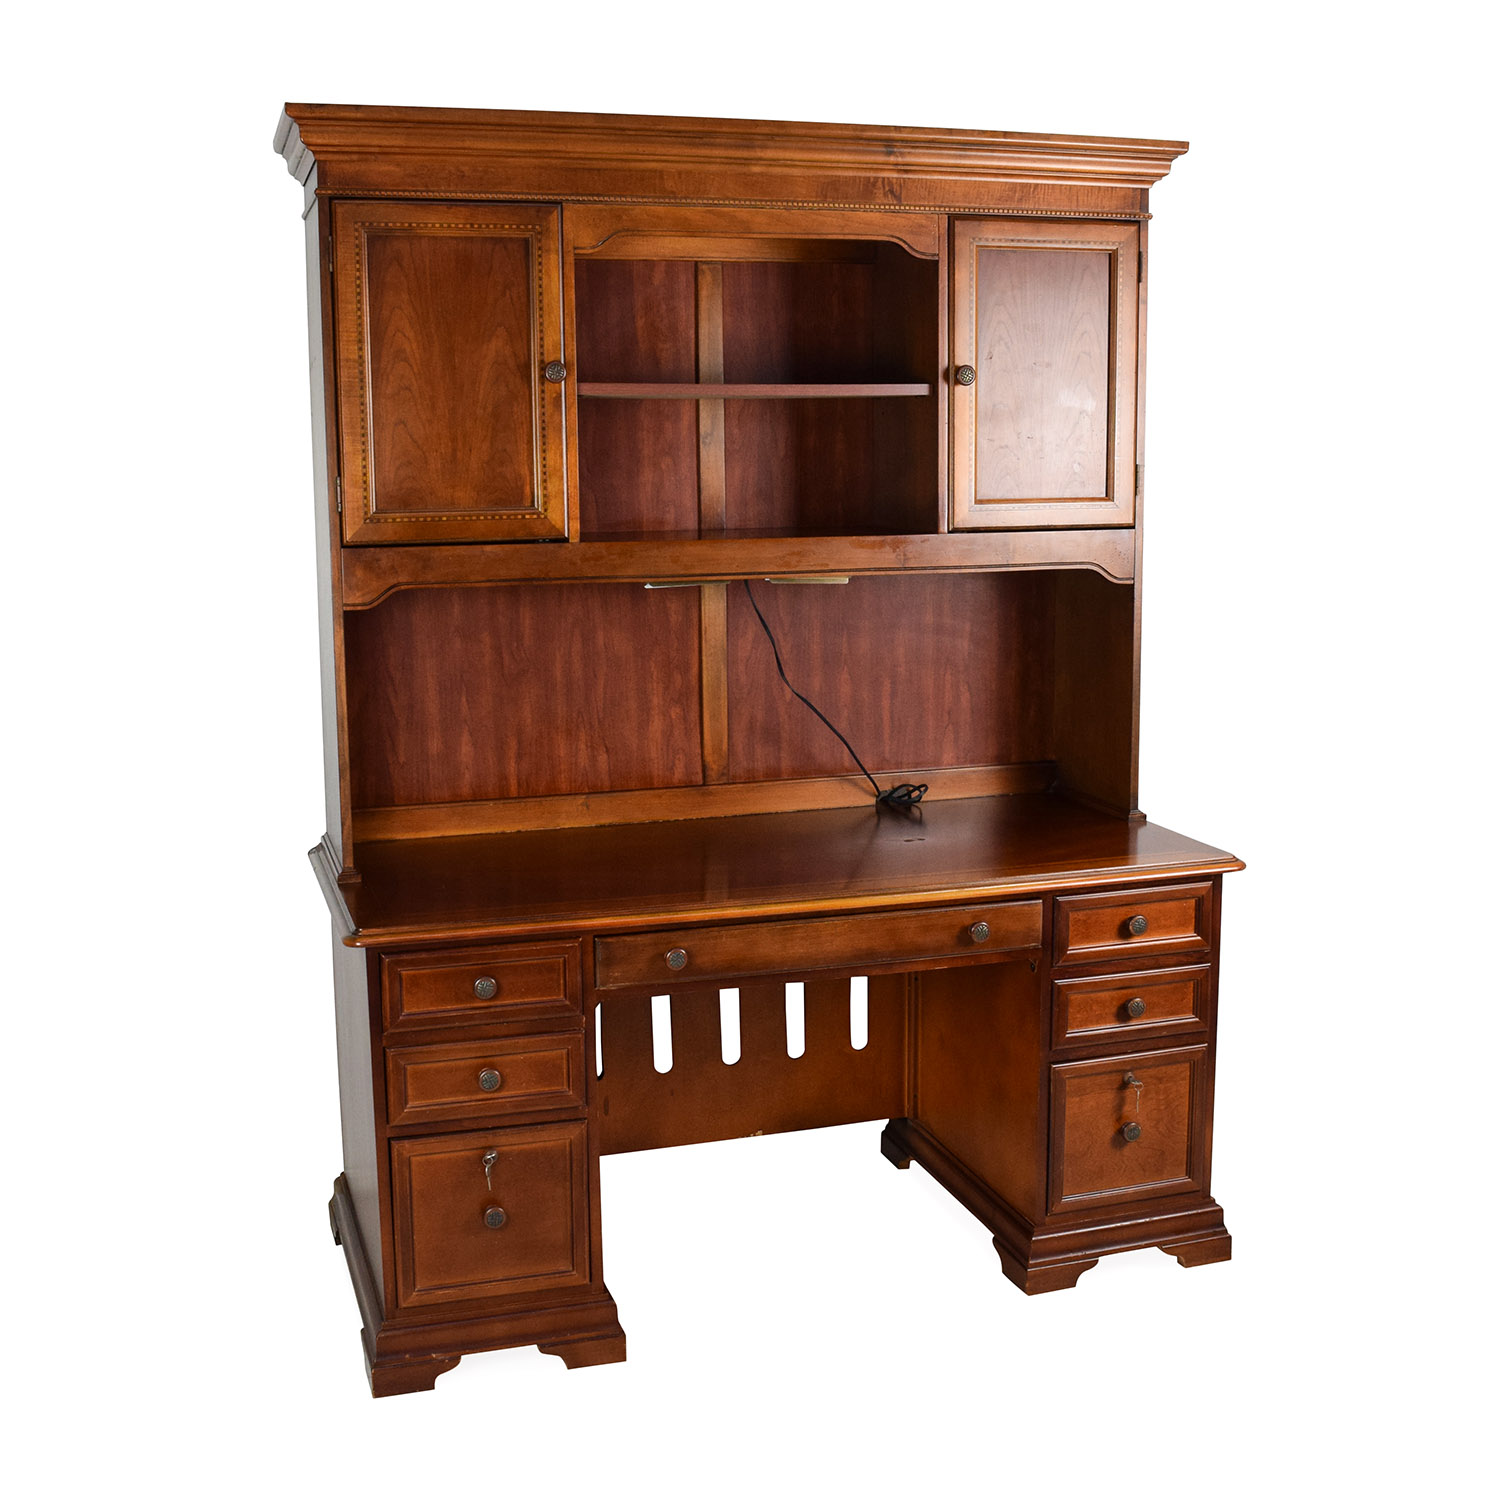 Hammary Furniture Hammary Furniture Wooden Desk with Hutch discount